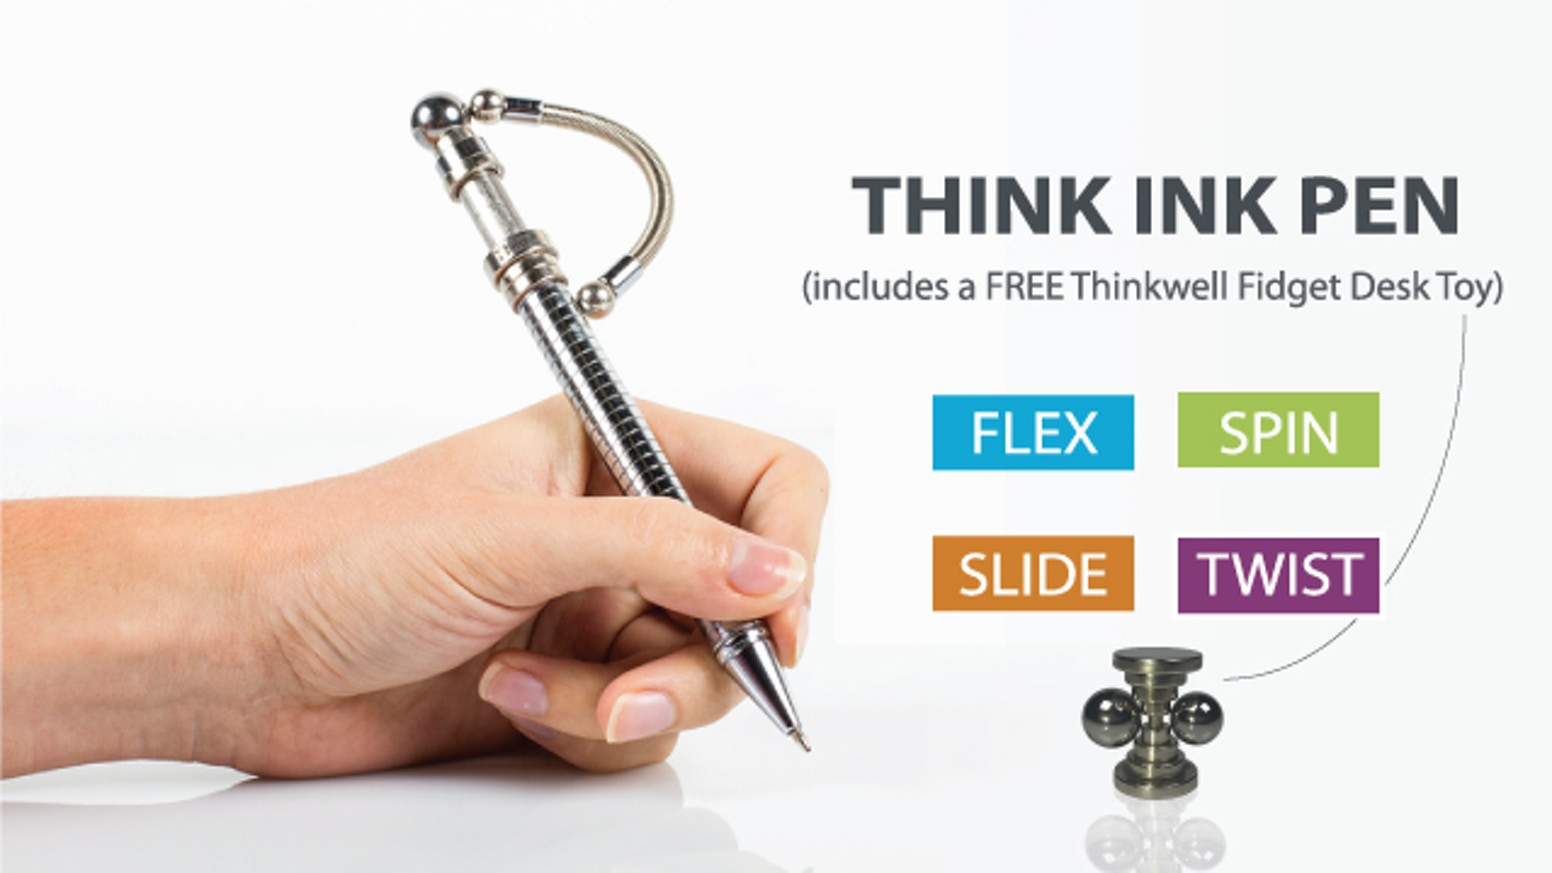 Not just a toy, Think Ink is a ball point pen and a discreet fidgeting